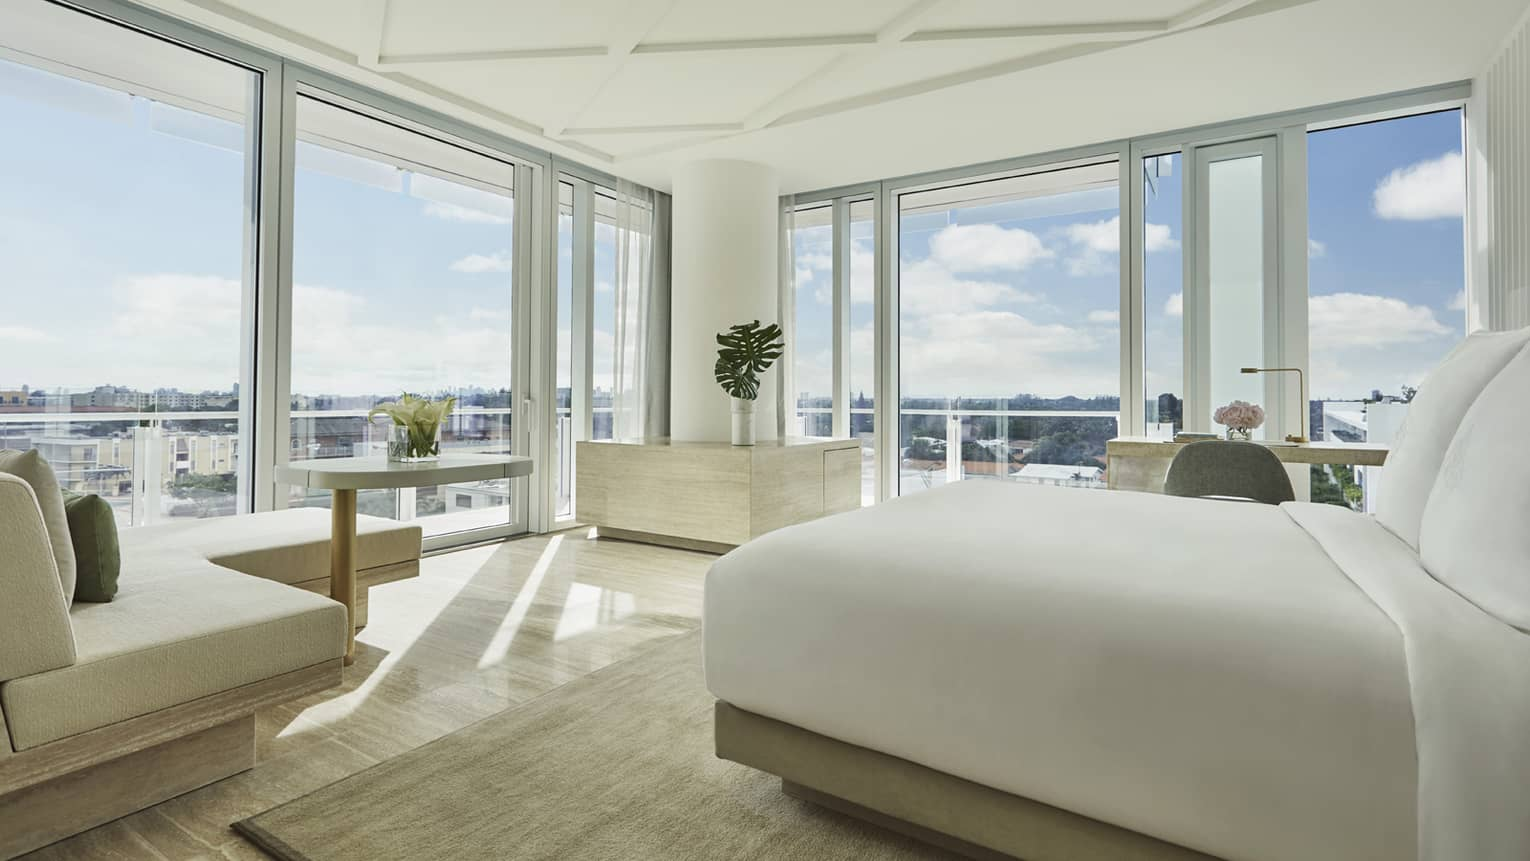 Sunset Studio Suite with modern white bed and chaise, and floor-to-ceiling windows with expansive views